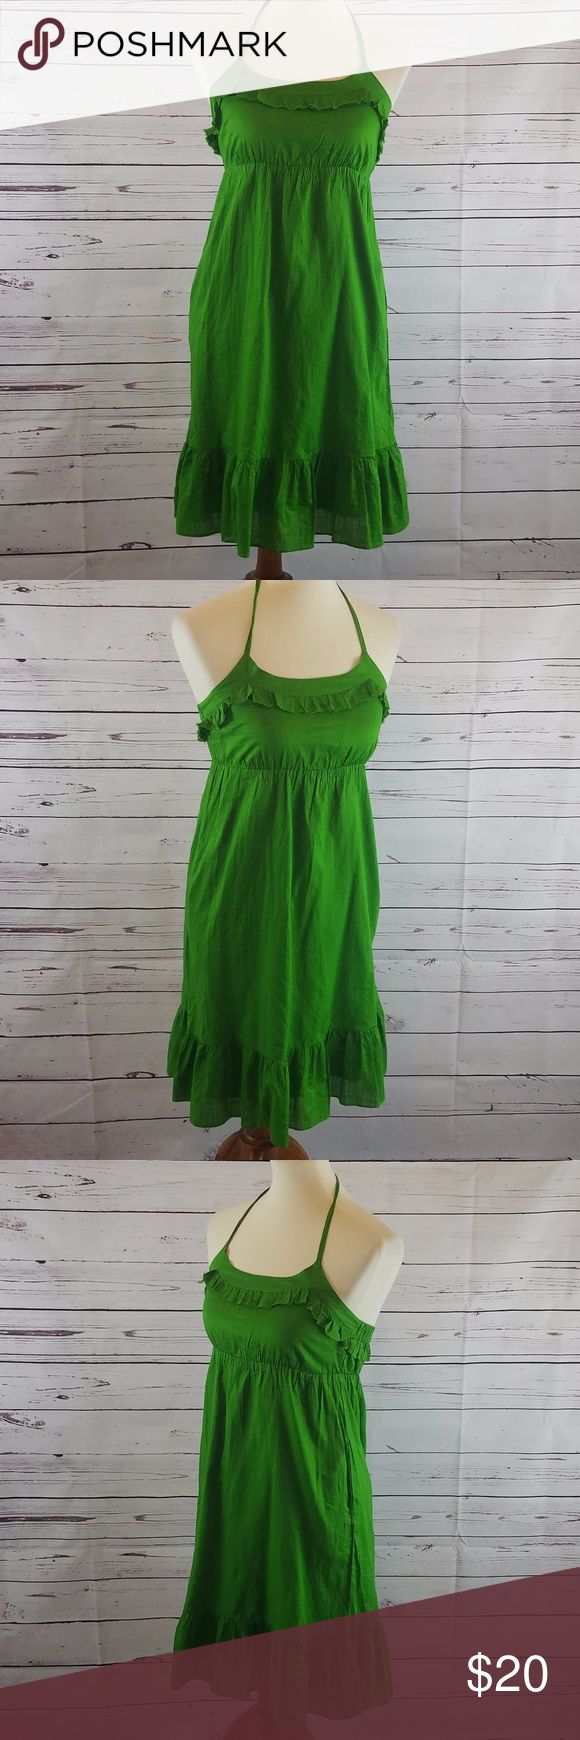 Old Navy Green Halter Casual Sundress Size XS Old Navy Women's 100% Cotton Green Halter Casual Sundress Size XS Old Navy Dresses